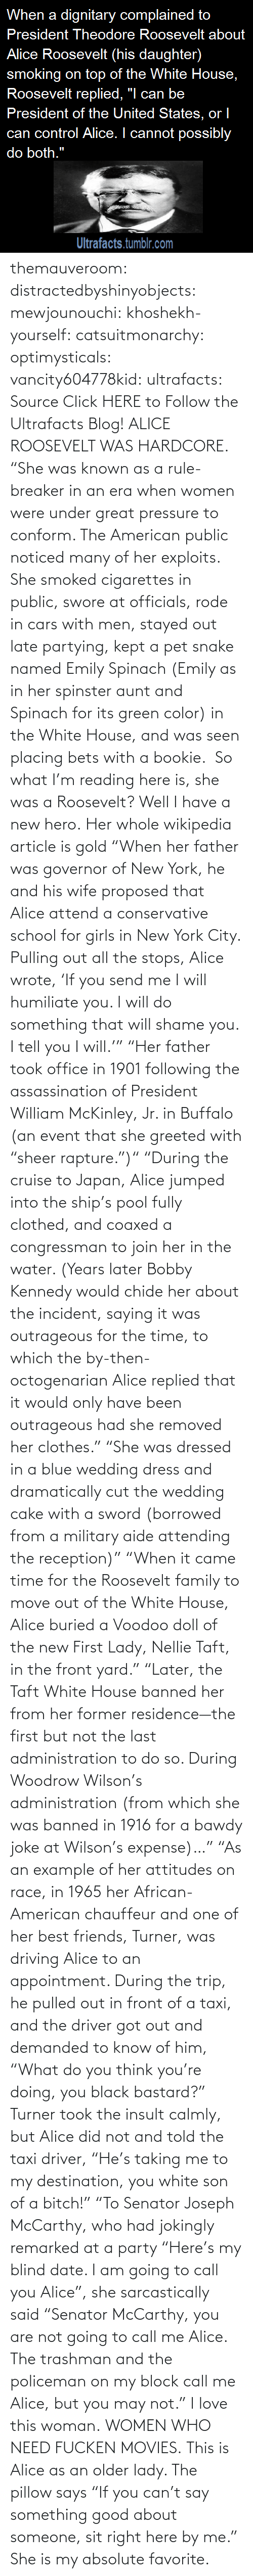 "I Will: themauveroom: distractedbyshinyobjects:  mewjounouchi:  khoshekh-yourself:  catsuitmonarchy:  optimysticals:  vancity604778kid:  ultrafacts:     Source Click HERE to Follow the Ultrafacts Blog!     ALICE ROOSEVELT WAS HARDCORE. ""She was known as a rule-breaker in an era when women were under great pressure to conform. The American public noticed many of her exploits. She smoked cigarettes in public, swore at officials, rode in cars with men, stayed out late partying, kept a pet snake named Emily Spinach (Emily as in her spinster aunt and Spinach for its green color) in the White House, and was seen placing bets with a bookie.    So what I'm reading here is, she was a Roosevelt?  Well I have a new hero.  Her whole wikipedia article is gold ""When her father was governor of New York, he and his wife proposed that Alice attend a conservative school for girls in New York City. Pulling out all the stops, Alice wrote, 'If you send me I will humiliate you. I will do something that will shame you. I tell you I will.'"" ""Her father took office in 1901 following the assassination of President William McKinley, Jr. in Buffalo (an event that she greeted with ""sheer rapture."")"" ""During the cruise to Japan, Alice jumped into the ship's pool fully clothed, and coaxed a congressman to join her in the water. (Years later Bobby Kennedy would chide her about the incident, saying it was outrageous for the time, to which the by-then-octogenarian Alice replied that it would only have been outrageous had she removed her clothes."" ""She was dressed in a blue wedding dress and dramatically cut the wedding cake with a sword (borrowed from a military aide attending the reception)"" ""When it came time for the Roosevelt family to move out of the White House, Alice buried a Voodoo doll of the new First Lady, Nellie Taft, in the front yard."" ""Later, the Taft White House banned her from her former residence—the first but not the last administration to do so. During Woodrow Wilson's administration (from which she was banned in 1916 for a bawdy joke at Wilson's expense)…"" ""As an example of her attitudes on race, in 1965 her African-American chauffeur and one of her best friends, Turner, was driving Alice to an appointment. During the trip, he pulled out in front of a taxi, and the driver got out and demanded to know of him, ""What do you think you're doing, you black bastard?"" Turner took the insult calmly, but Alice did not and told the taxi driver, ""He's taking me to my destination, you white son of a bitch!"" ""To Senator Joseph McCarthy, who had jokingly remarked at a party ""Here's my blind date. I am going to call you Alice"", she sarcastically said ""Senator McCarthy, you are not going to call me Alice. The trashman and the policeman on my block call me Alice, but you may not.""  I love this woman.  WOMEN WHO NEED FUCKEN MOVIES.   This is Alice as an older lady. The pillow says ""If you can't say something good about someone, sit right here by me.""  She is my absolute favorite."